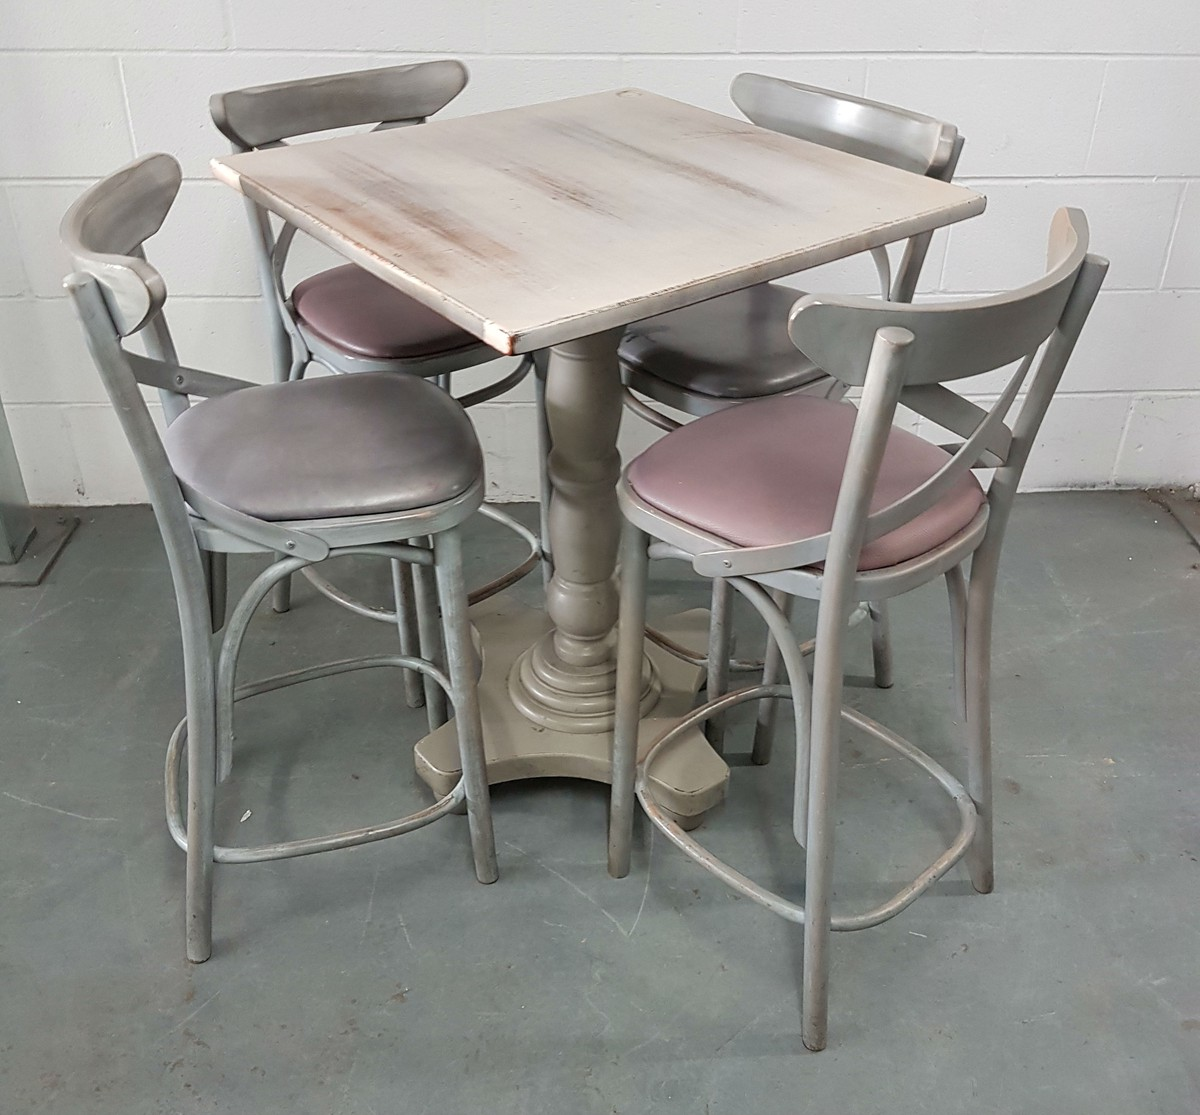 Bar Table And Chairs For Sale: Secondhand Chairs And Tables